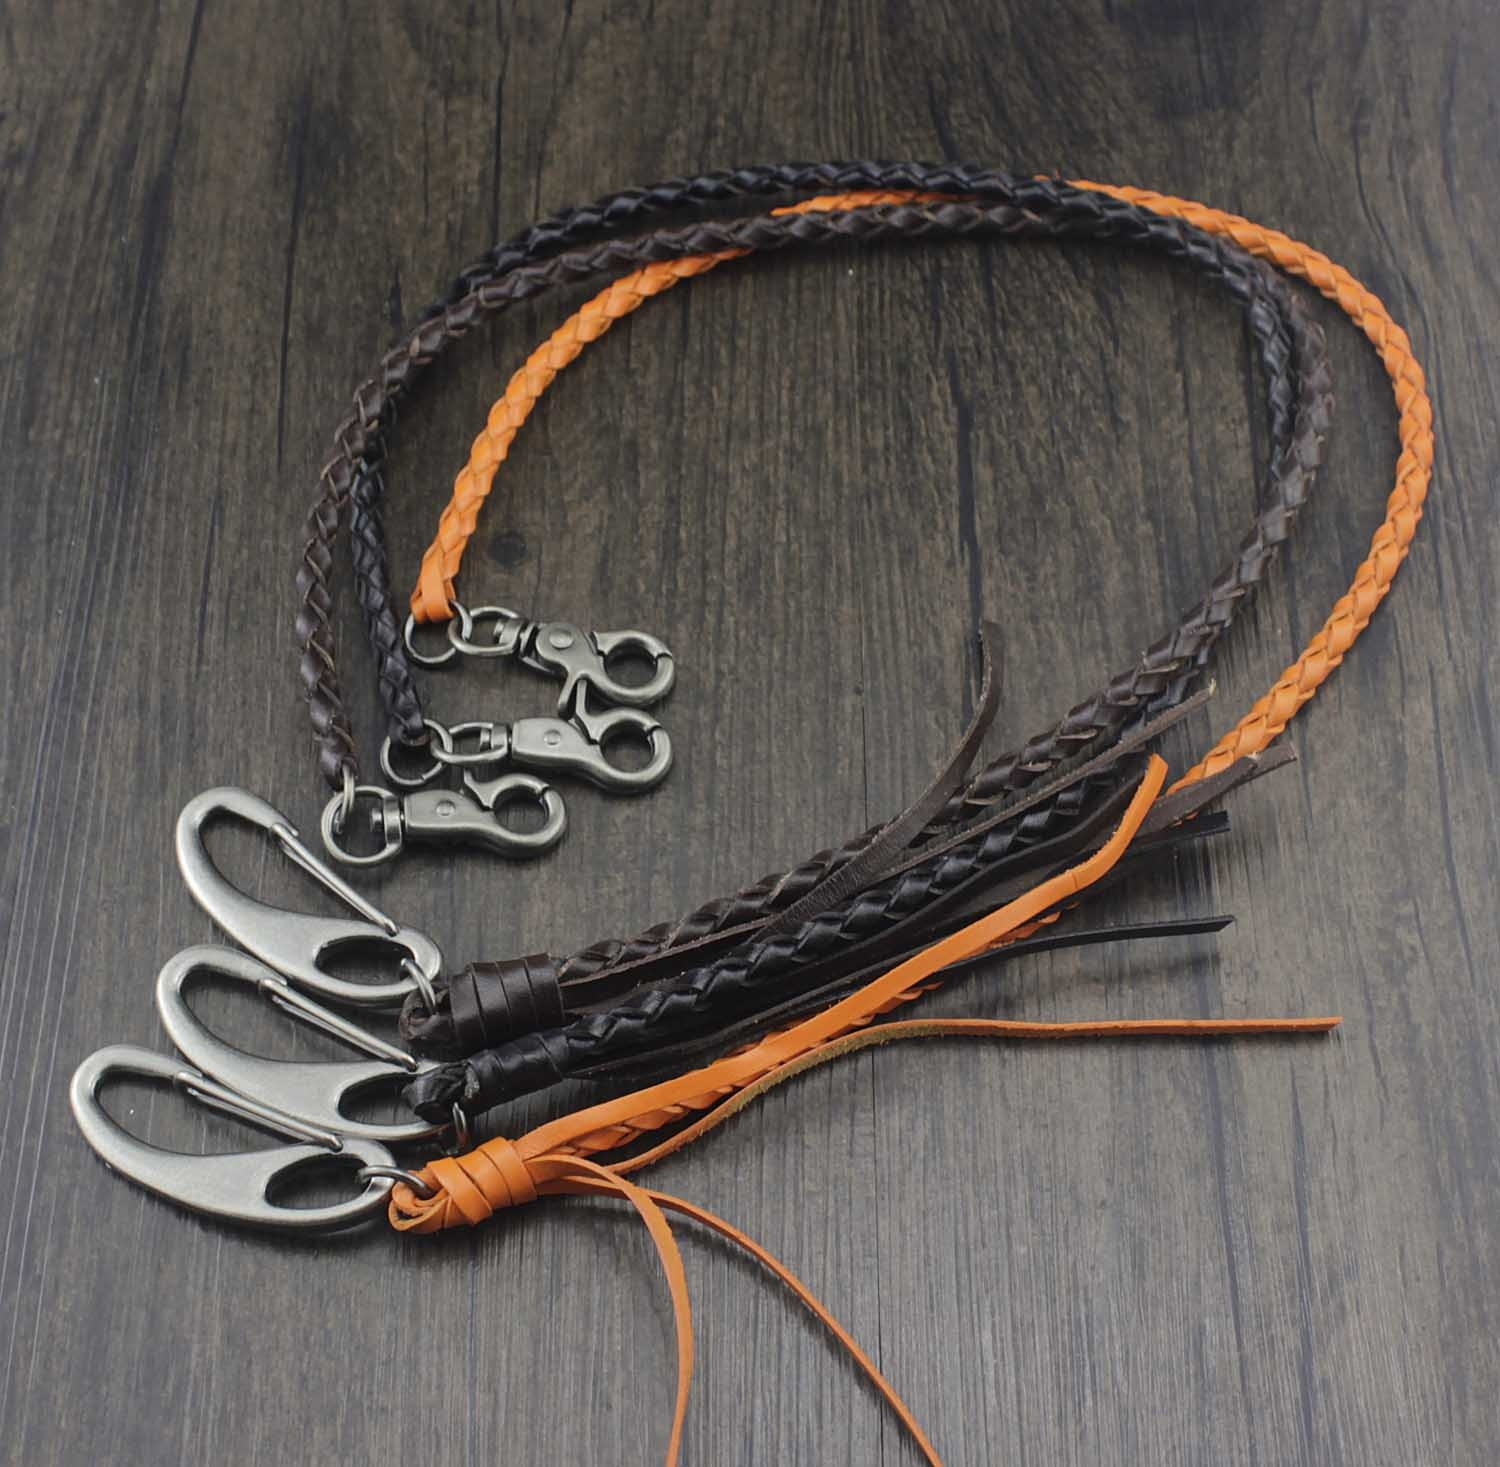 New Braided Leather Wallet Chain with Leather Clasp Clip Biker Rock